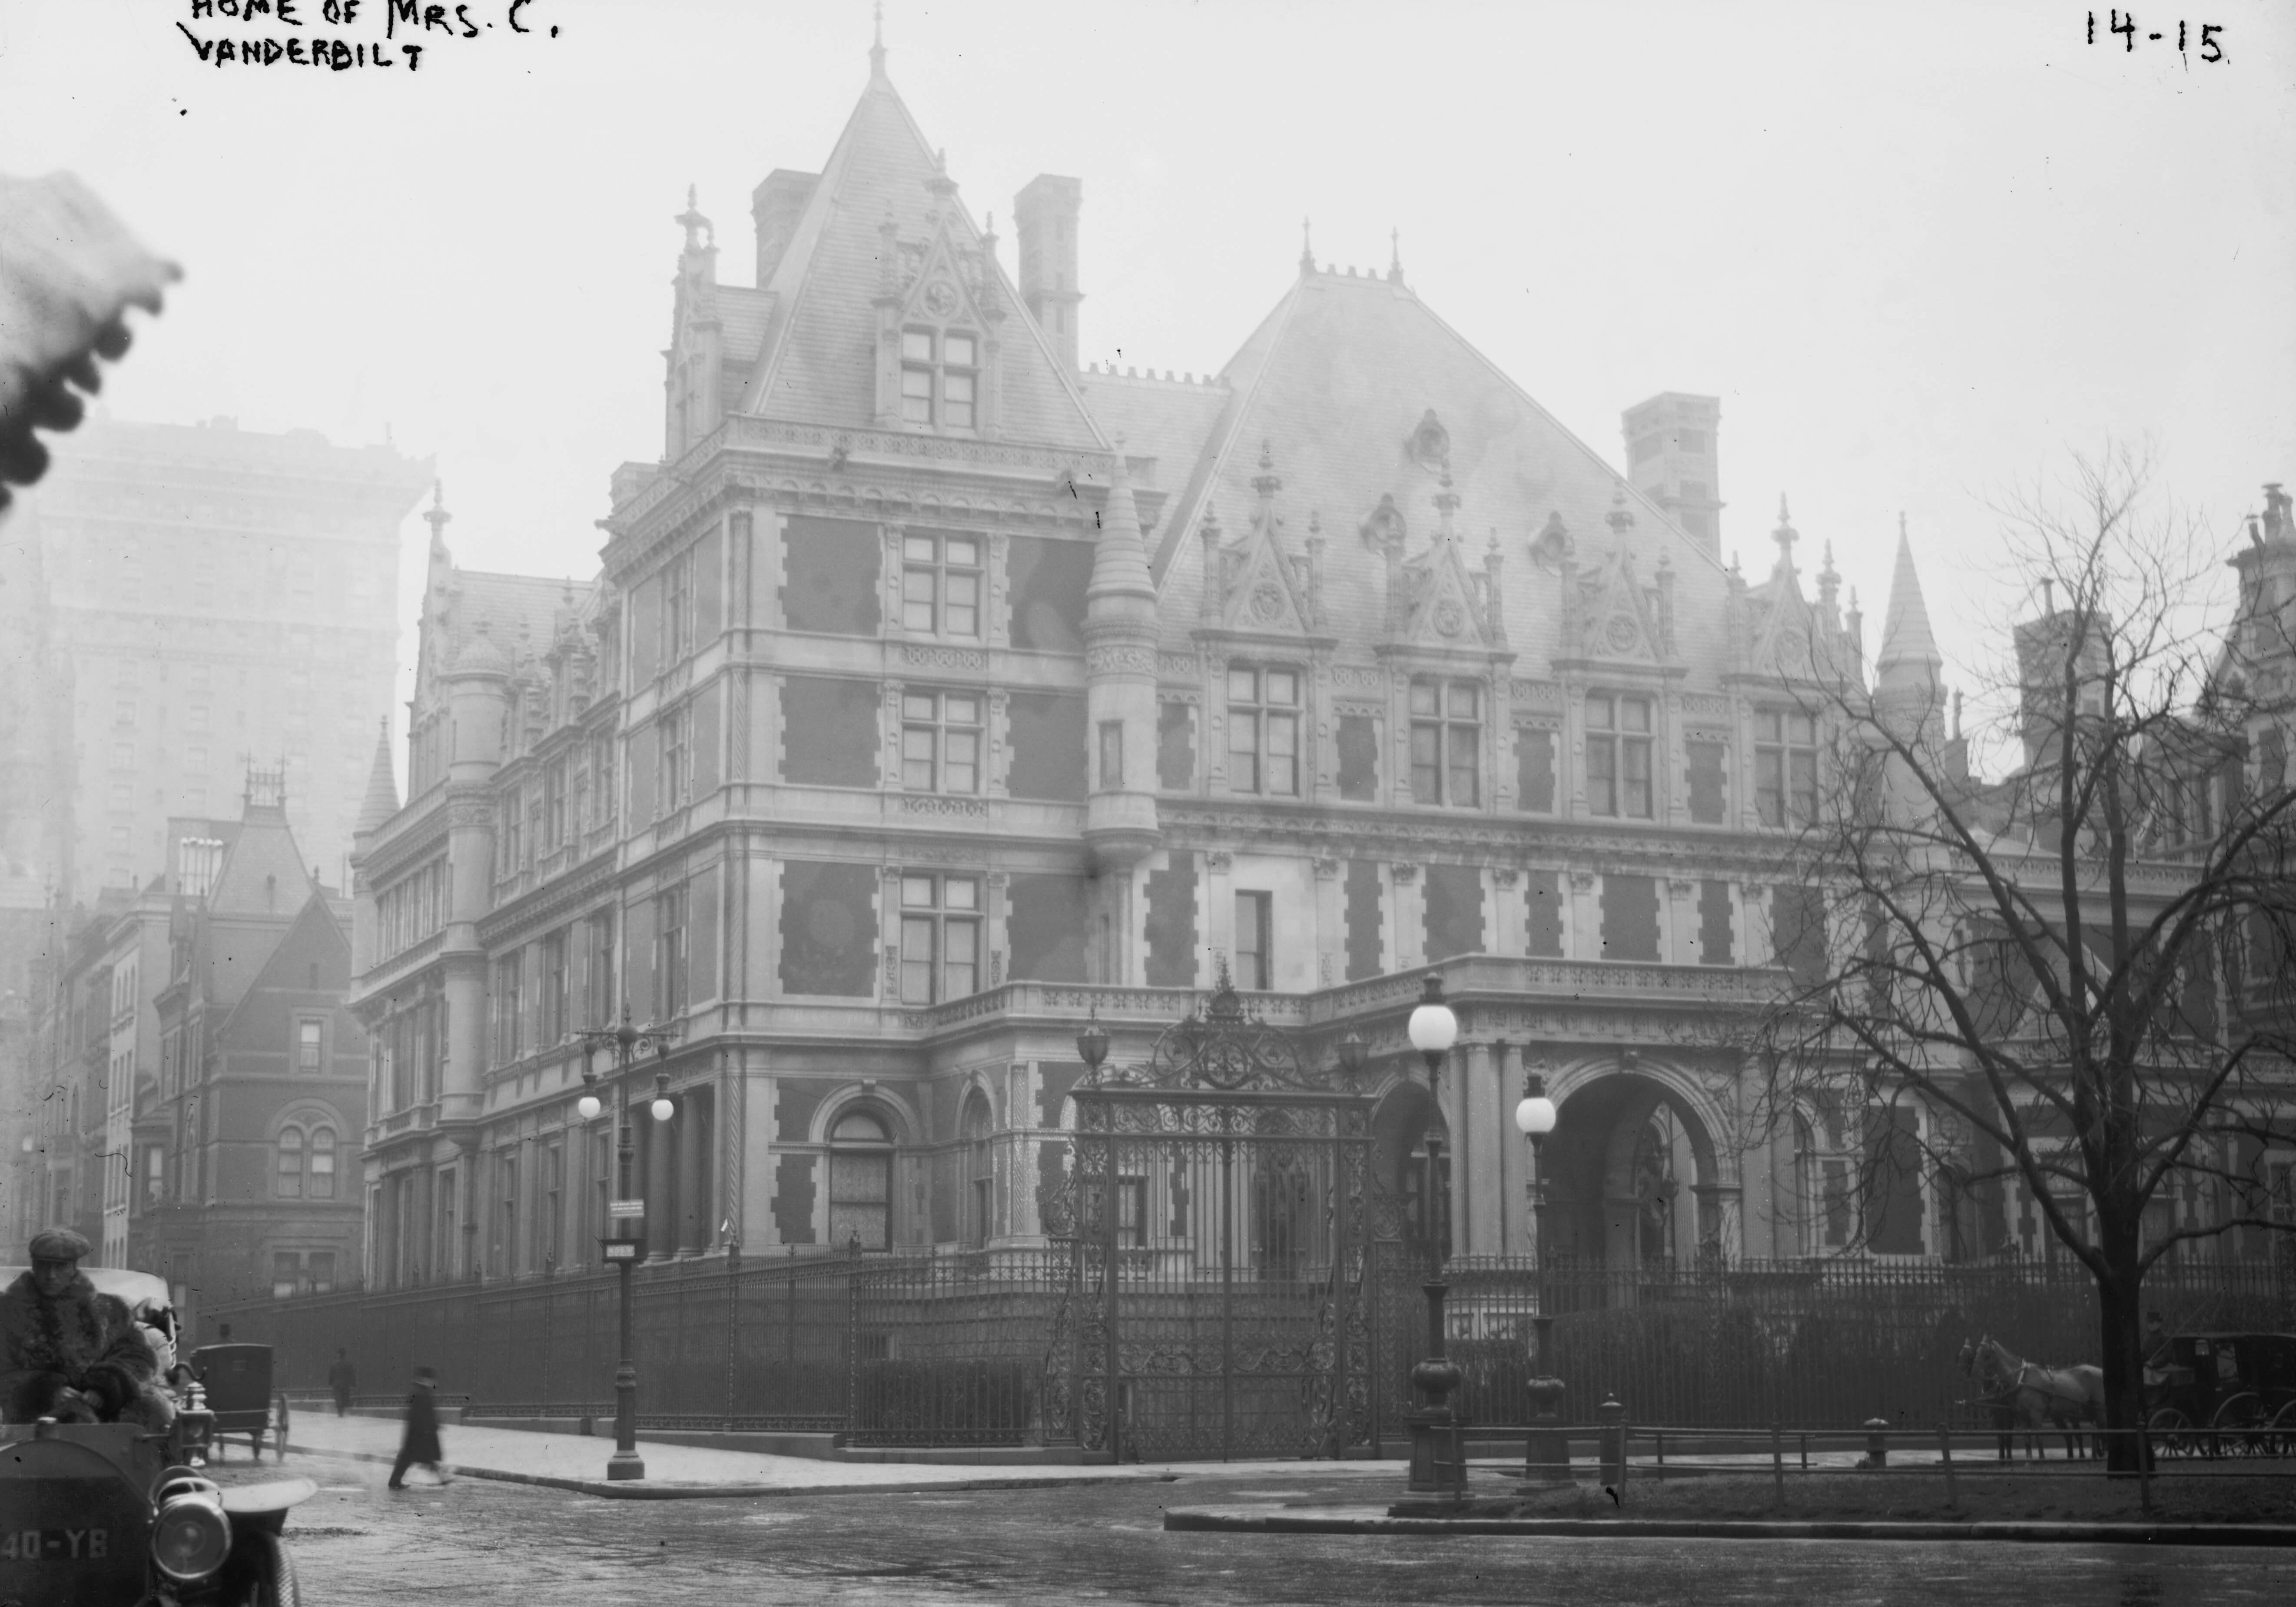 The Cornelius Vanderbilt II House, 1 West 57th Street, New York City. In 1890, Italian immigrants known as 'terrazeri' were hired to lay terrazzo floors inside the grandiose Vanderbilt residence.